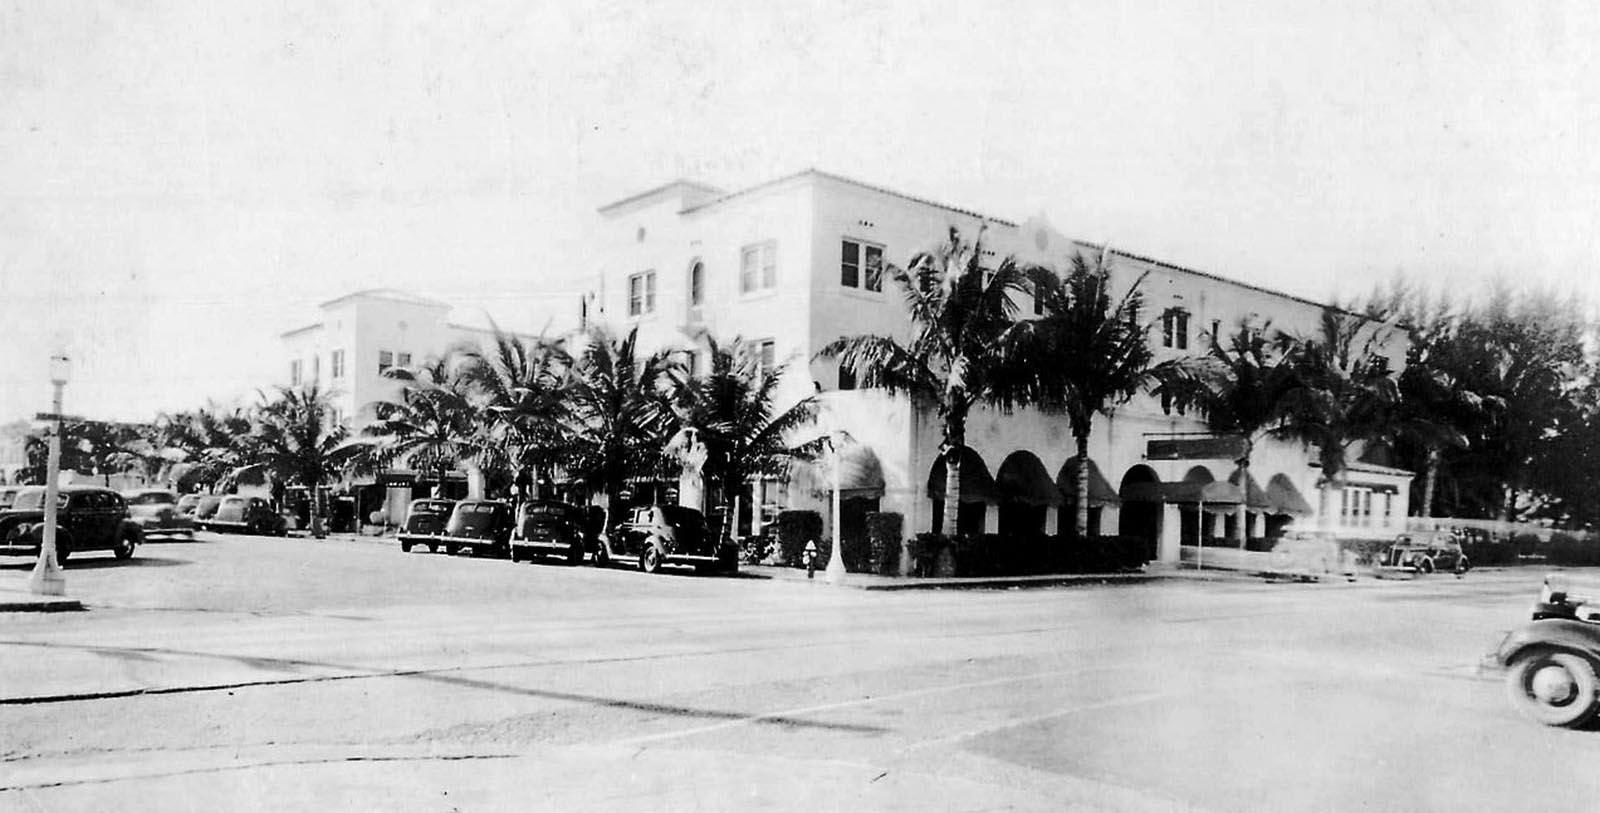 Historic image of hotel exterior at Colony Hotel & Cabana Club, 1926, Member of Historic Hotels of America, in Delray Beach, Florida, Discover